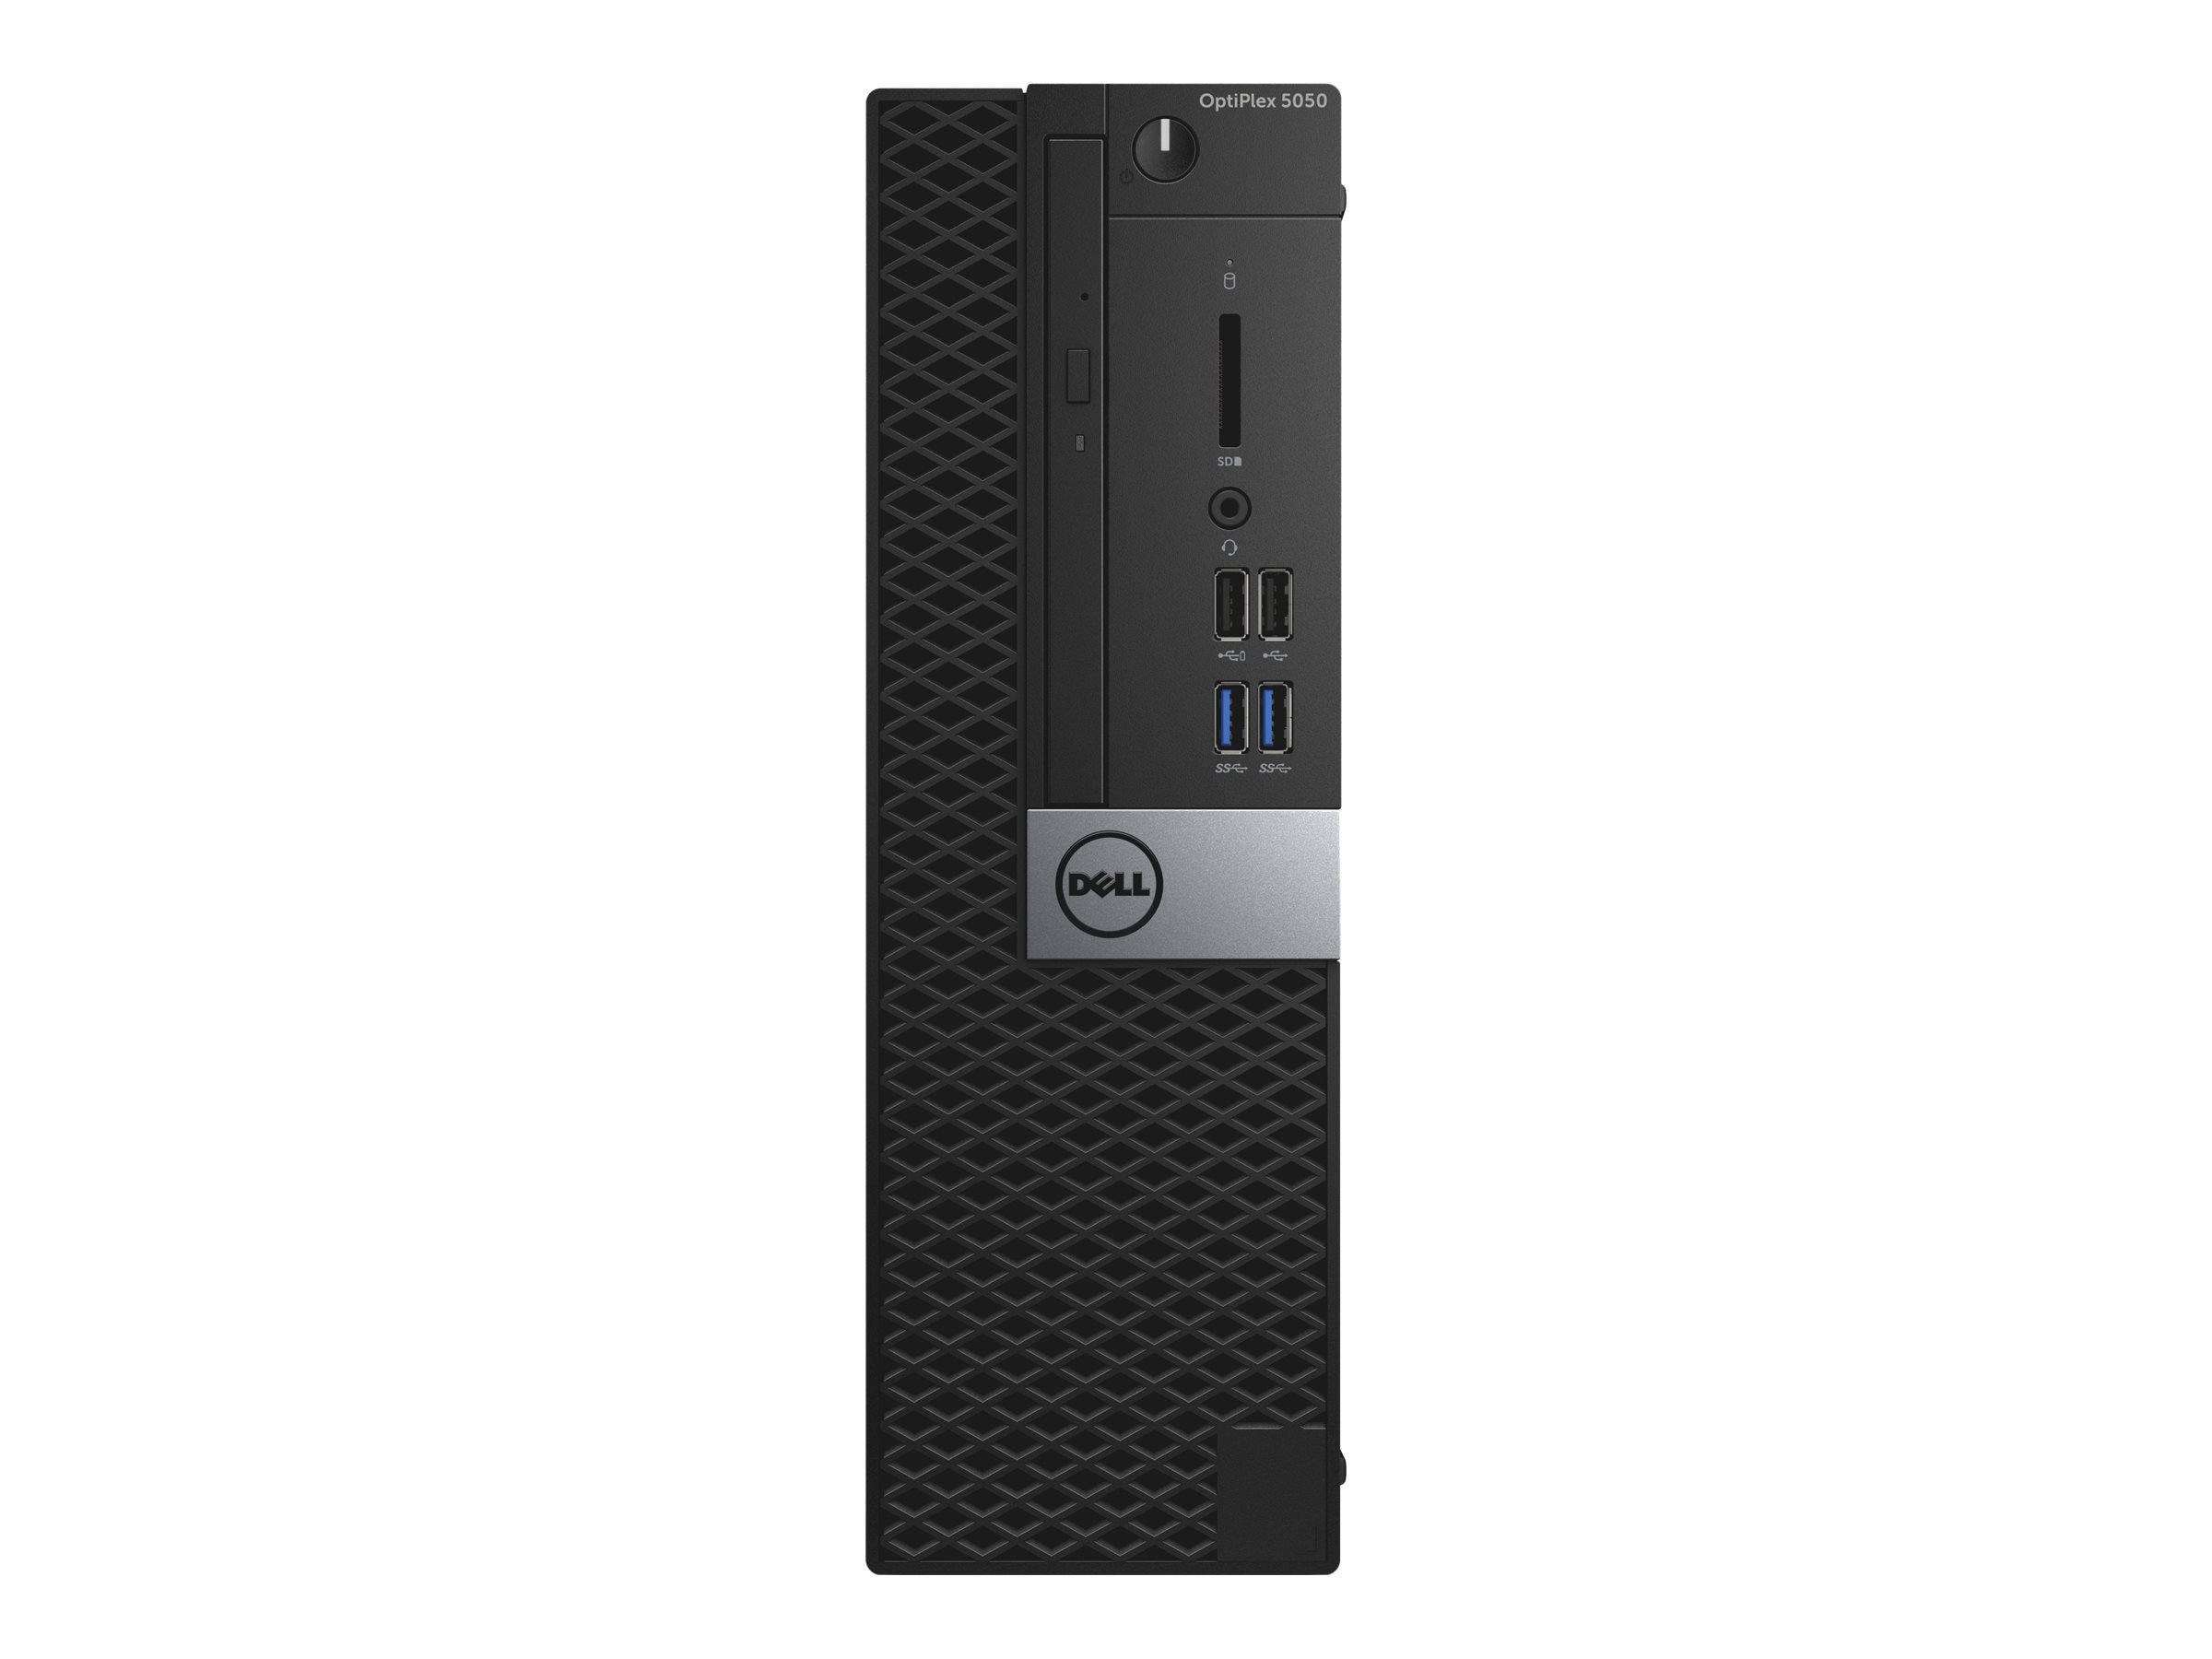 Dell YMYT2 Image 2